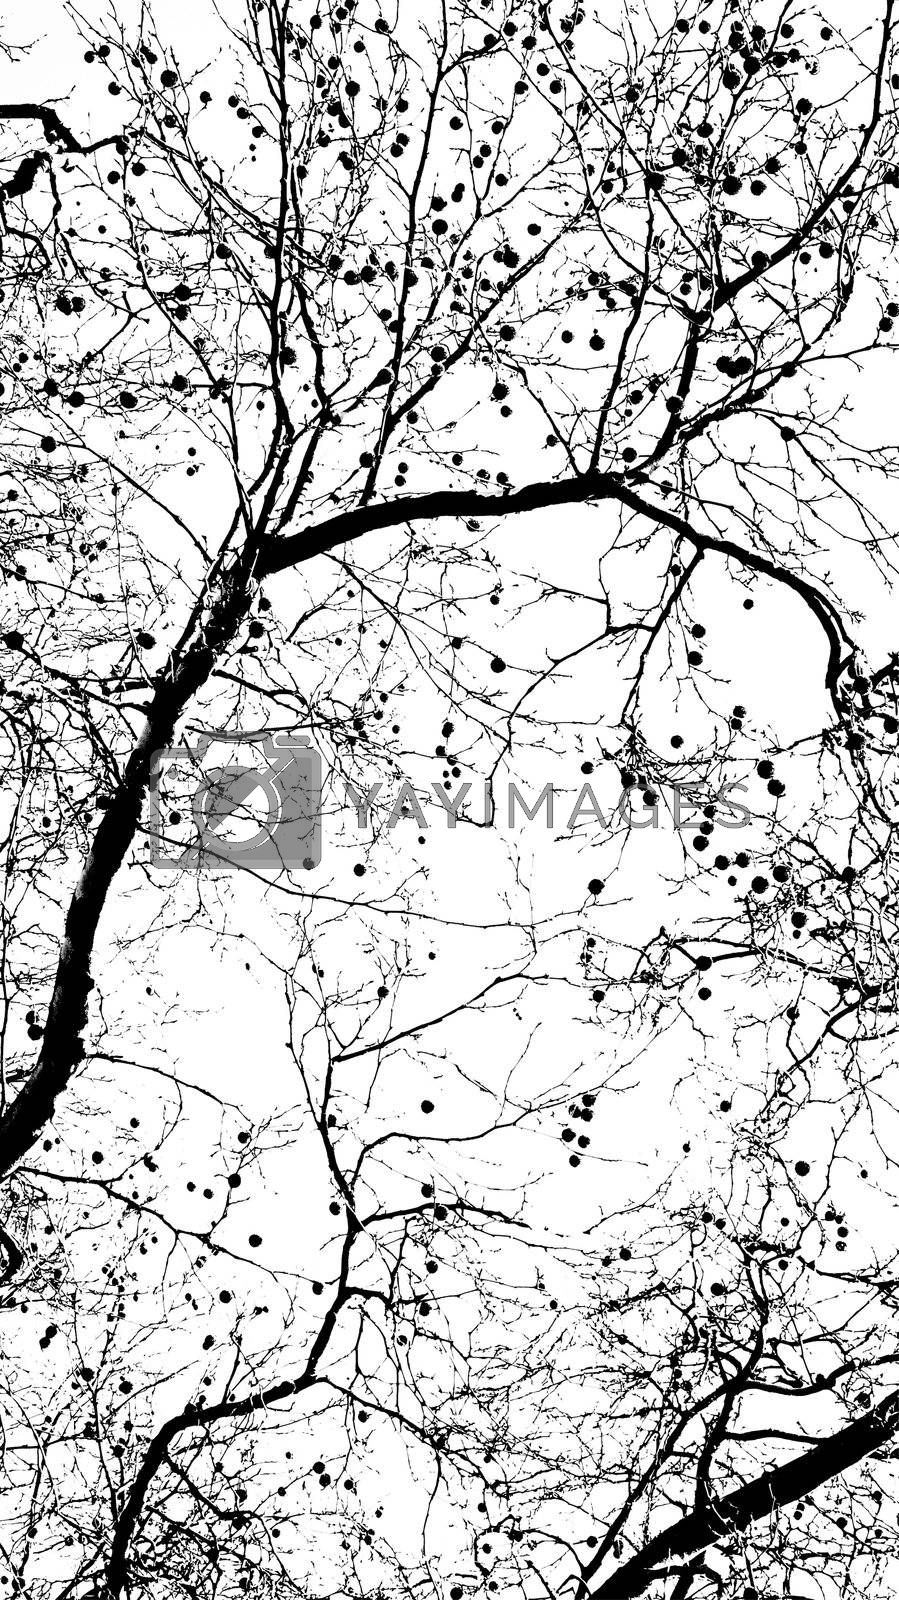 Abstract tree, canopy background